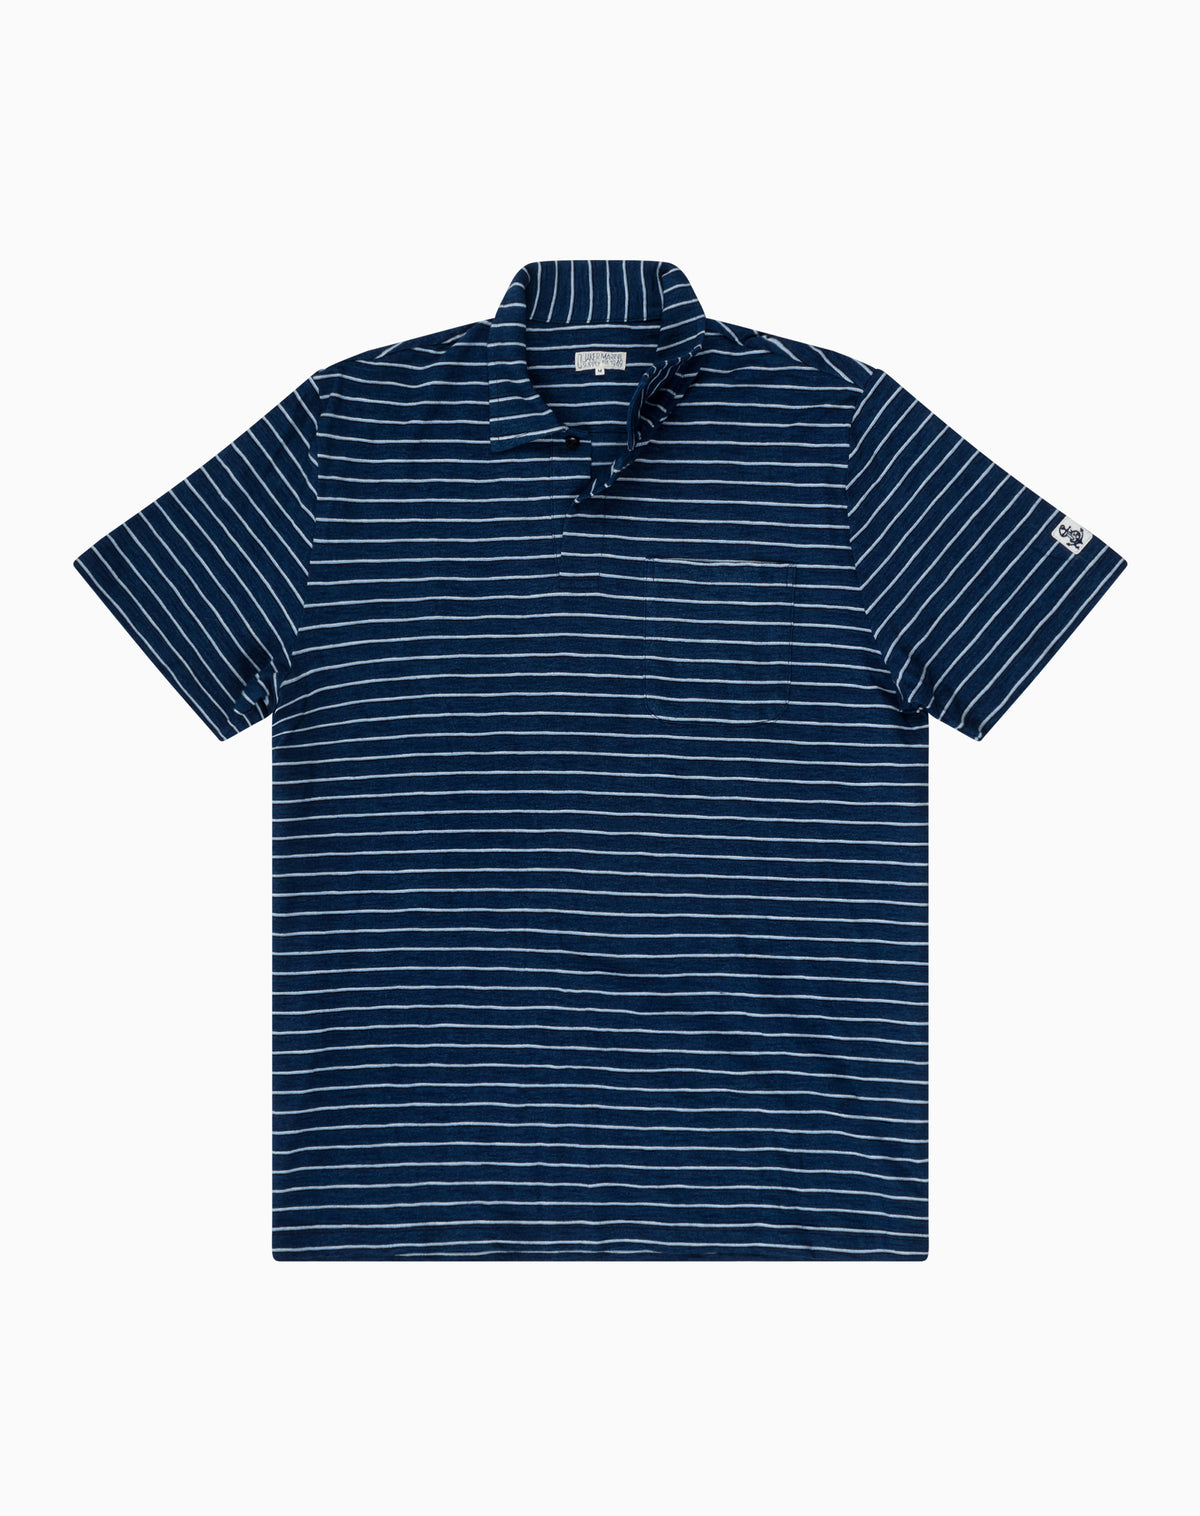 Indigo Stripe Polo in Dark Wash